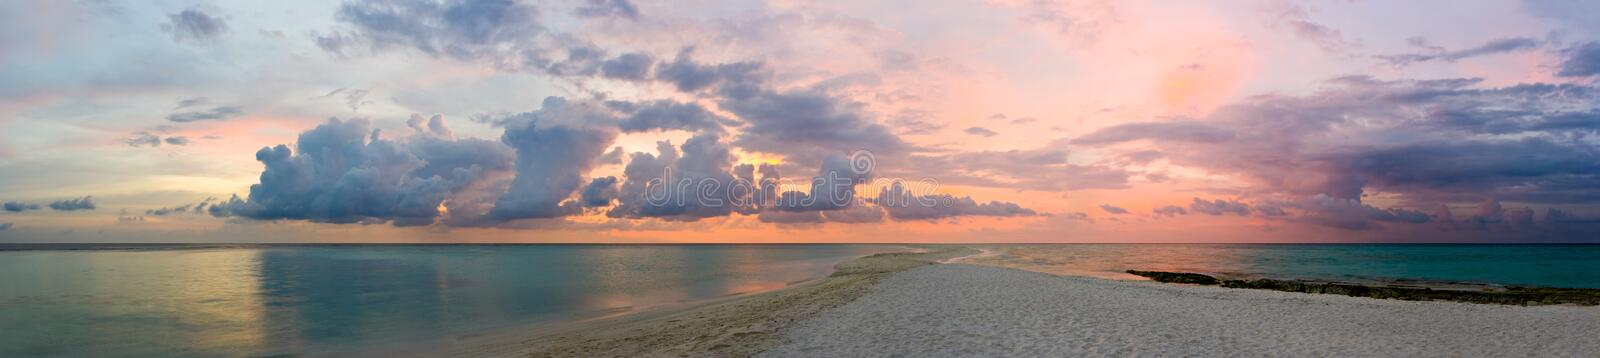 Ocean, beach and sunset stock photo